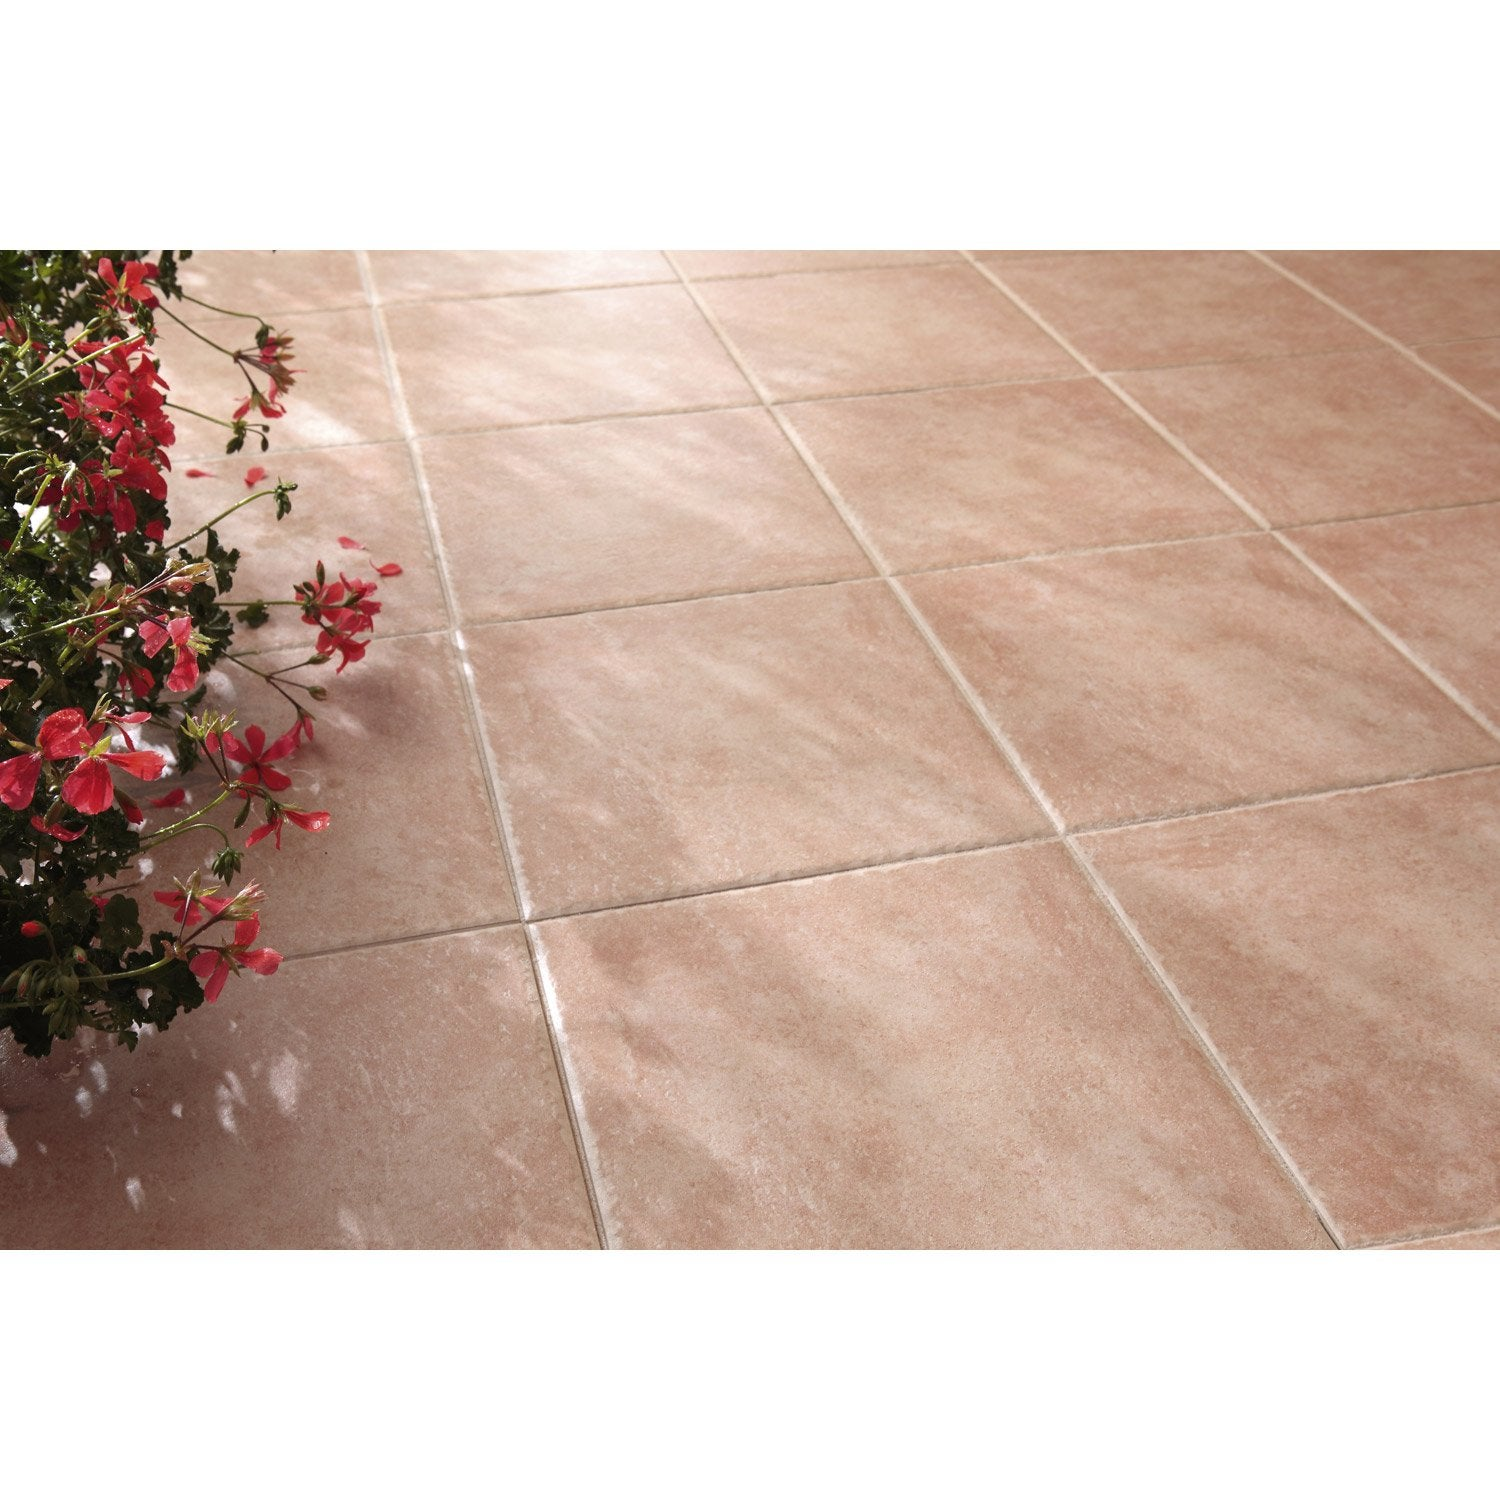 carrelage rose effet pierre michigan x cm ForCarrelage Rose